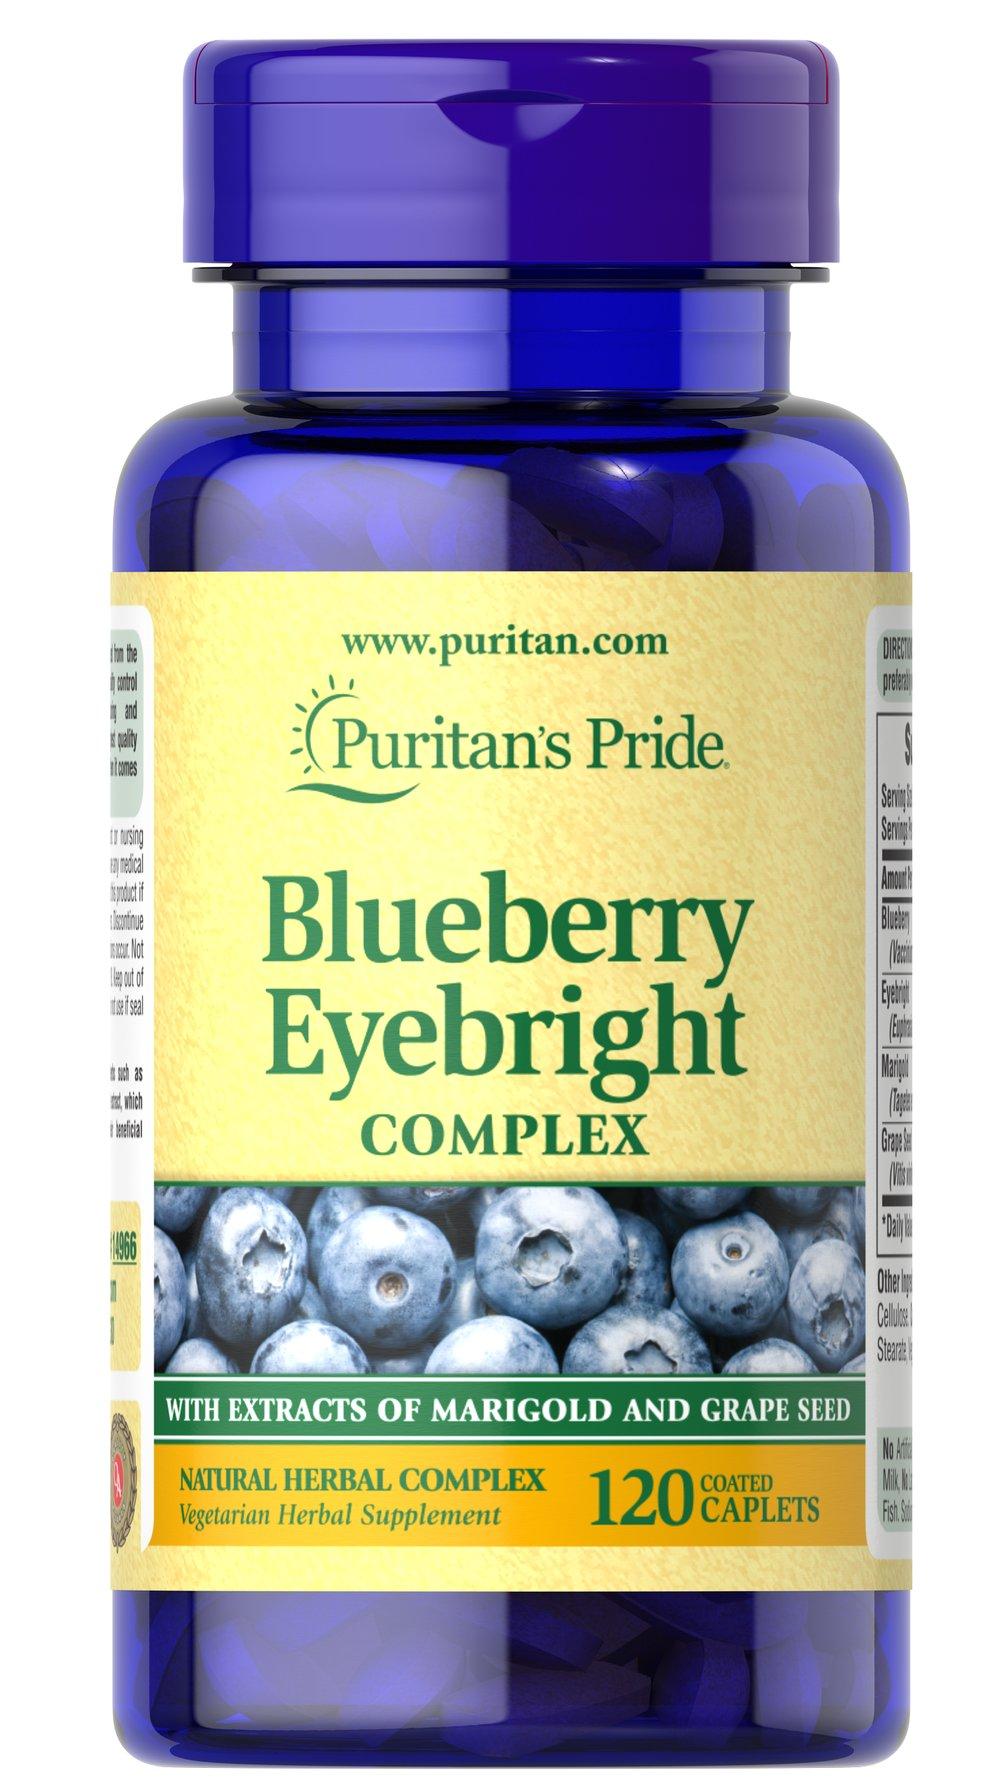 Blueberry Eyebright Complex <p>• Provides powerful antioxidant support for every cell in your body, including the eye's cells**<br />• Blueberry extract is a natural source of two important phytochemicals, anthocyanins and chlorogenic acid, to support antioxidant health**<br />• Eyebright provides additional herbal support for good health<br />• Marigold and Grape Seed extracts are included for extra nutritional support<br />• Our vegetarian-friendly caplets are coa